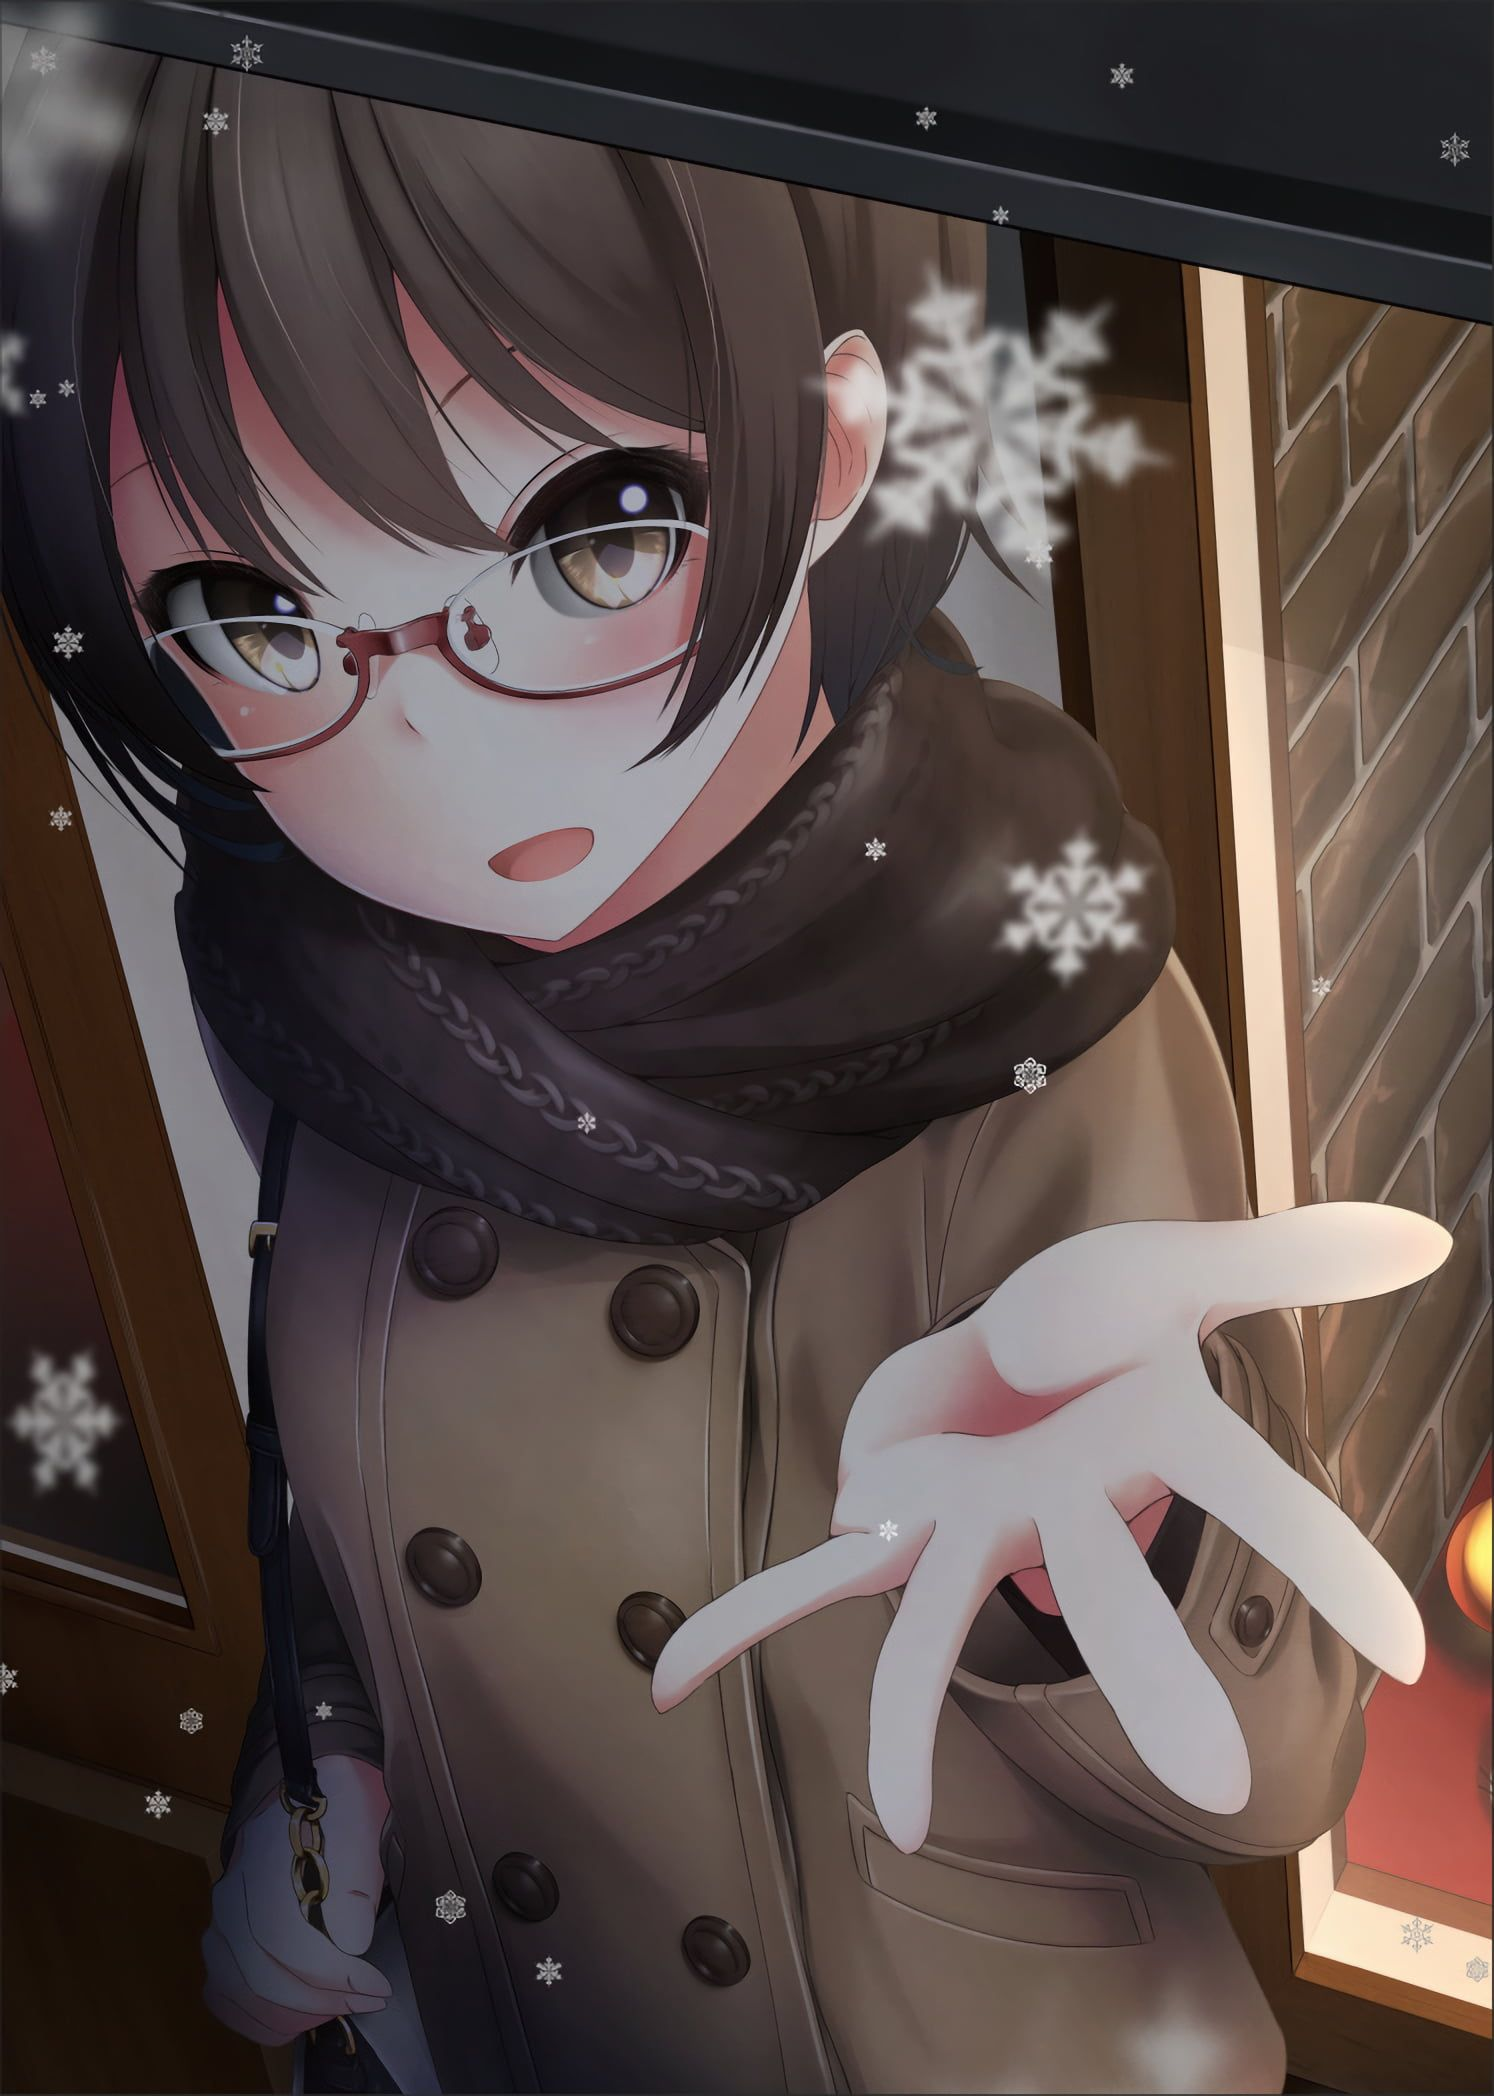 Anime Cute Glasses Girl Hd Wallpapers Wallpaper Cave